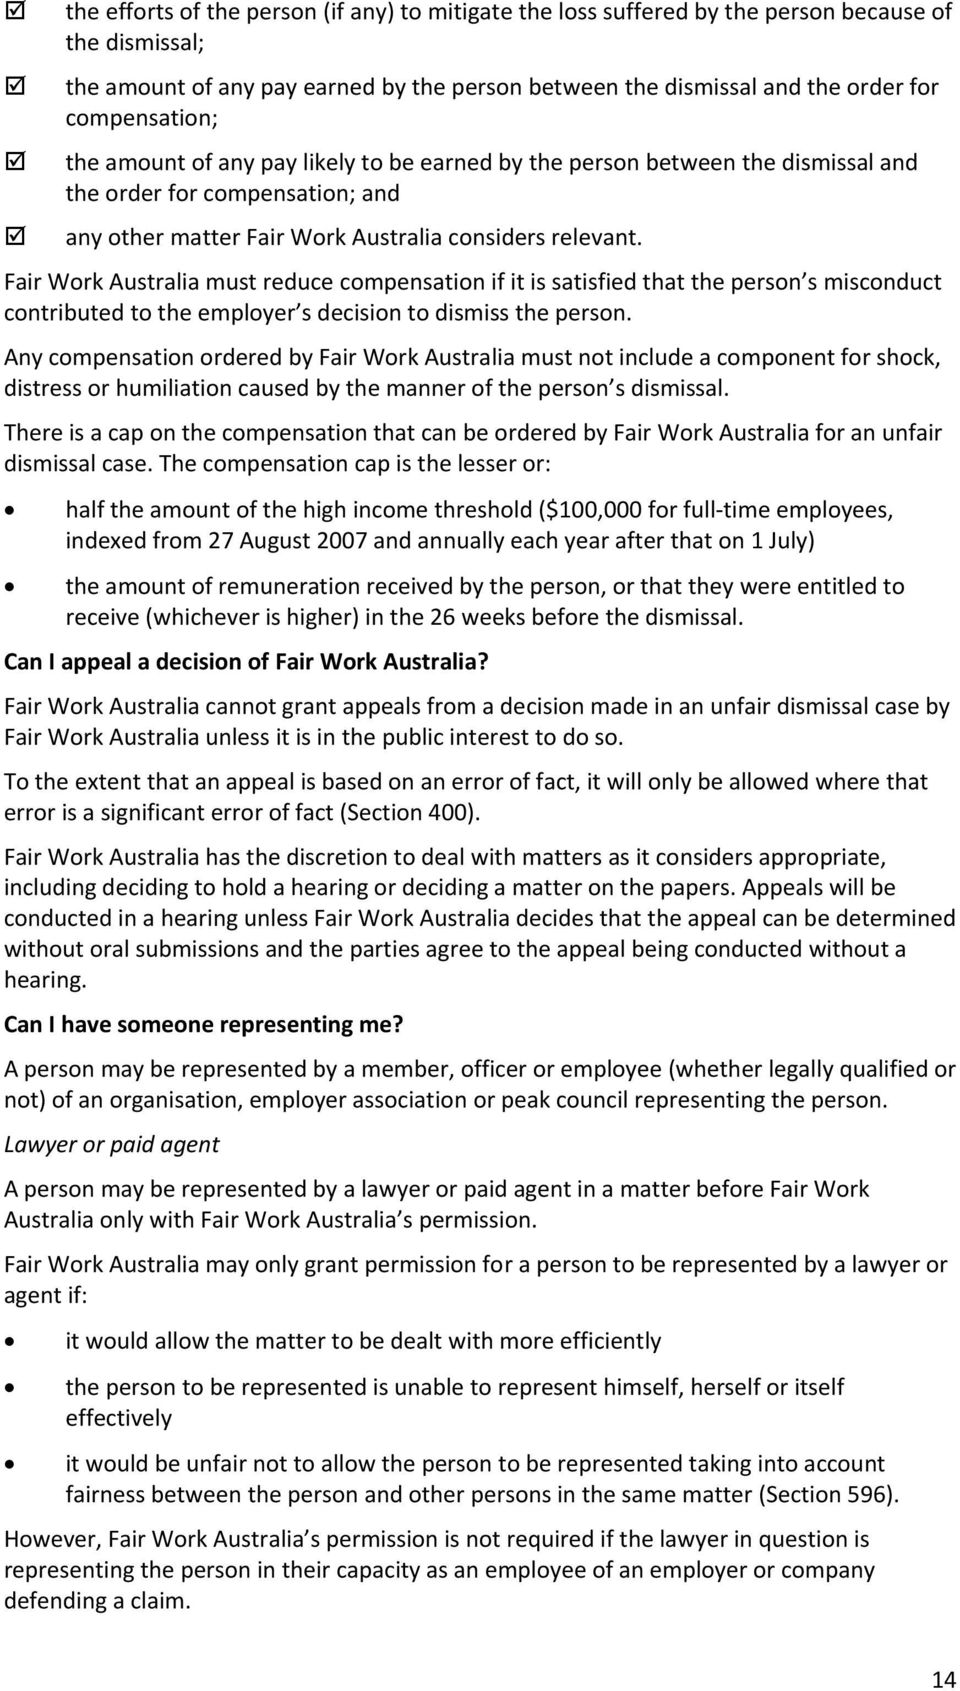 Fair Work Australia must reduce compensation if it is satisfied that the person s misconduct contributed to the employer s decision to dismiss the person.